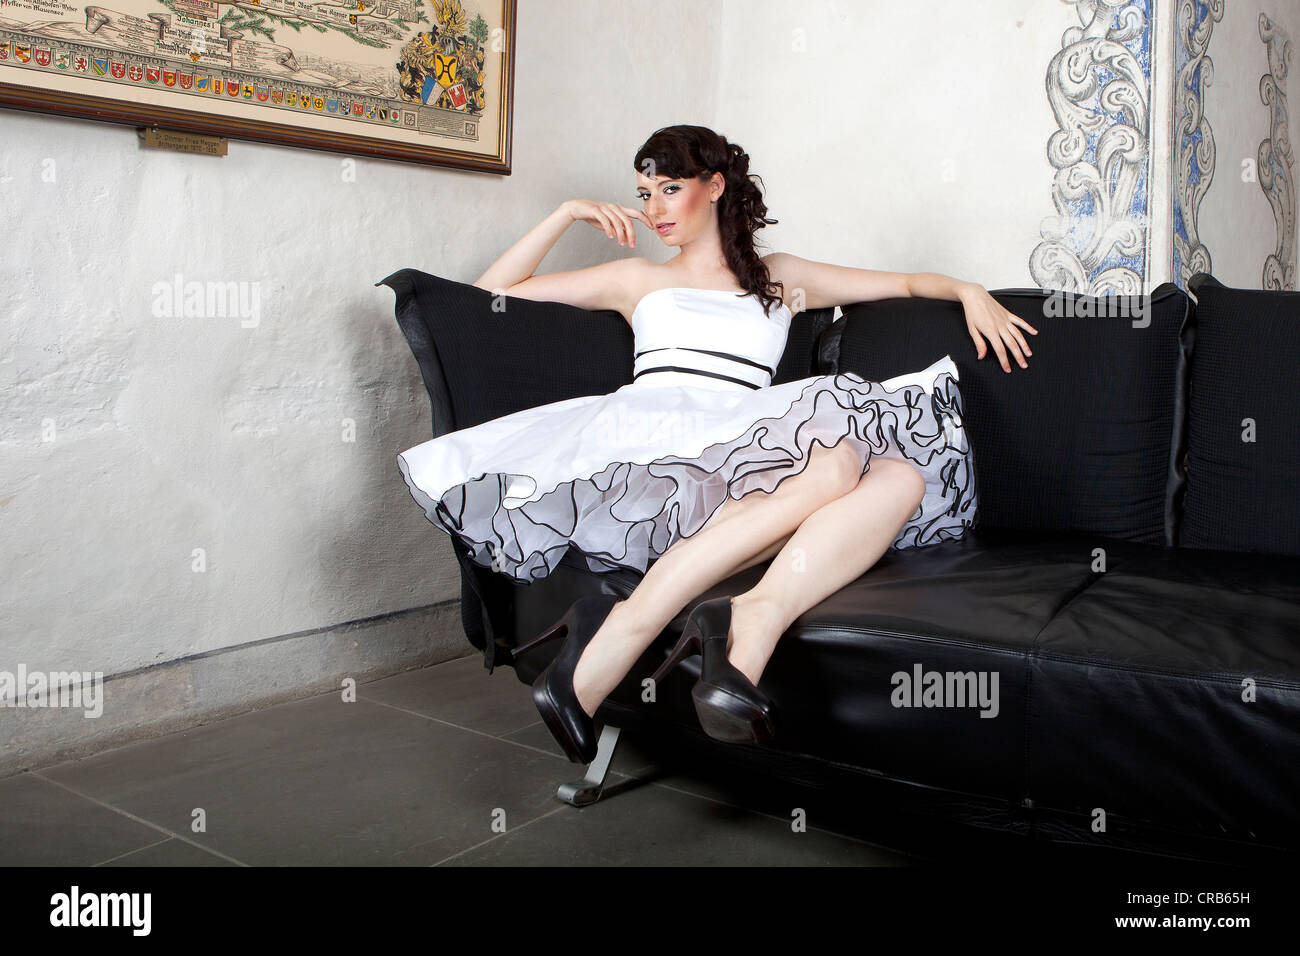 Young woman wearing a white dress sitting on a sofa - Stock Image